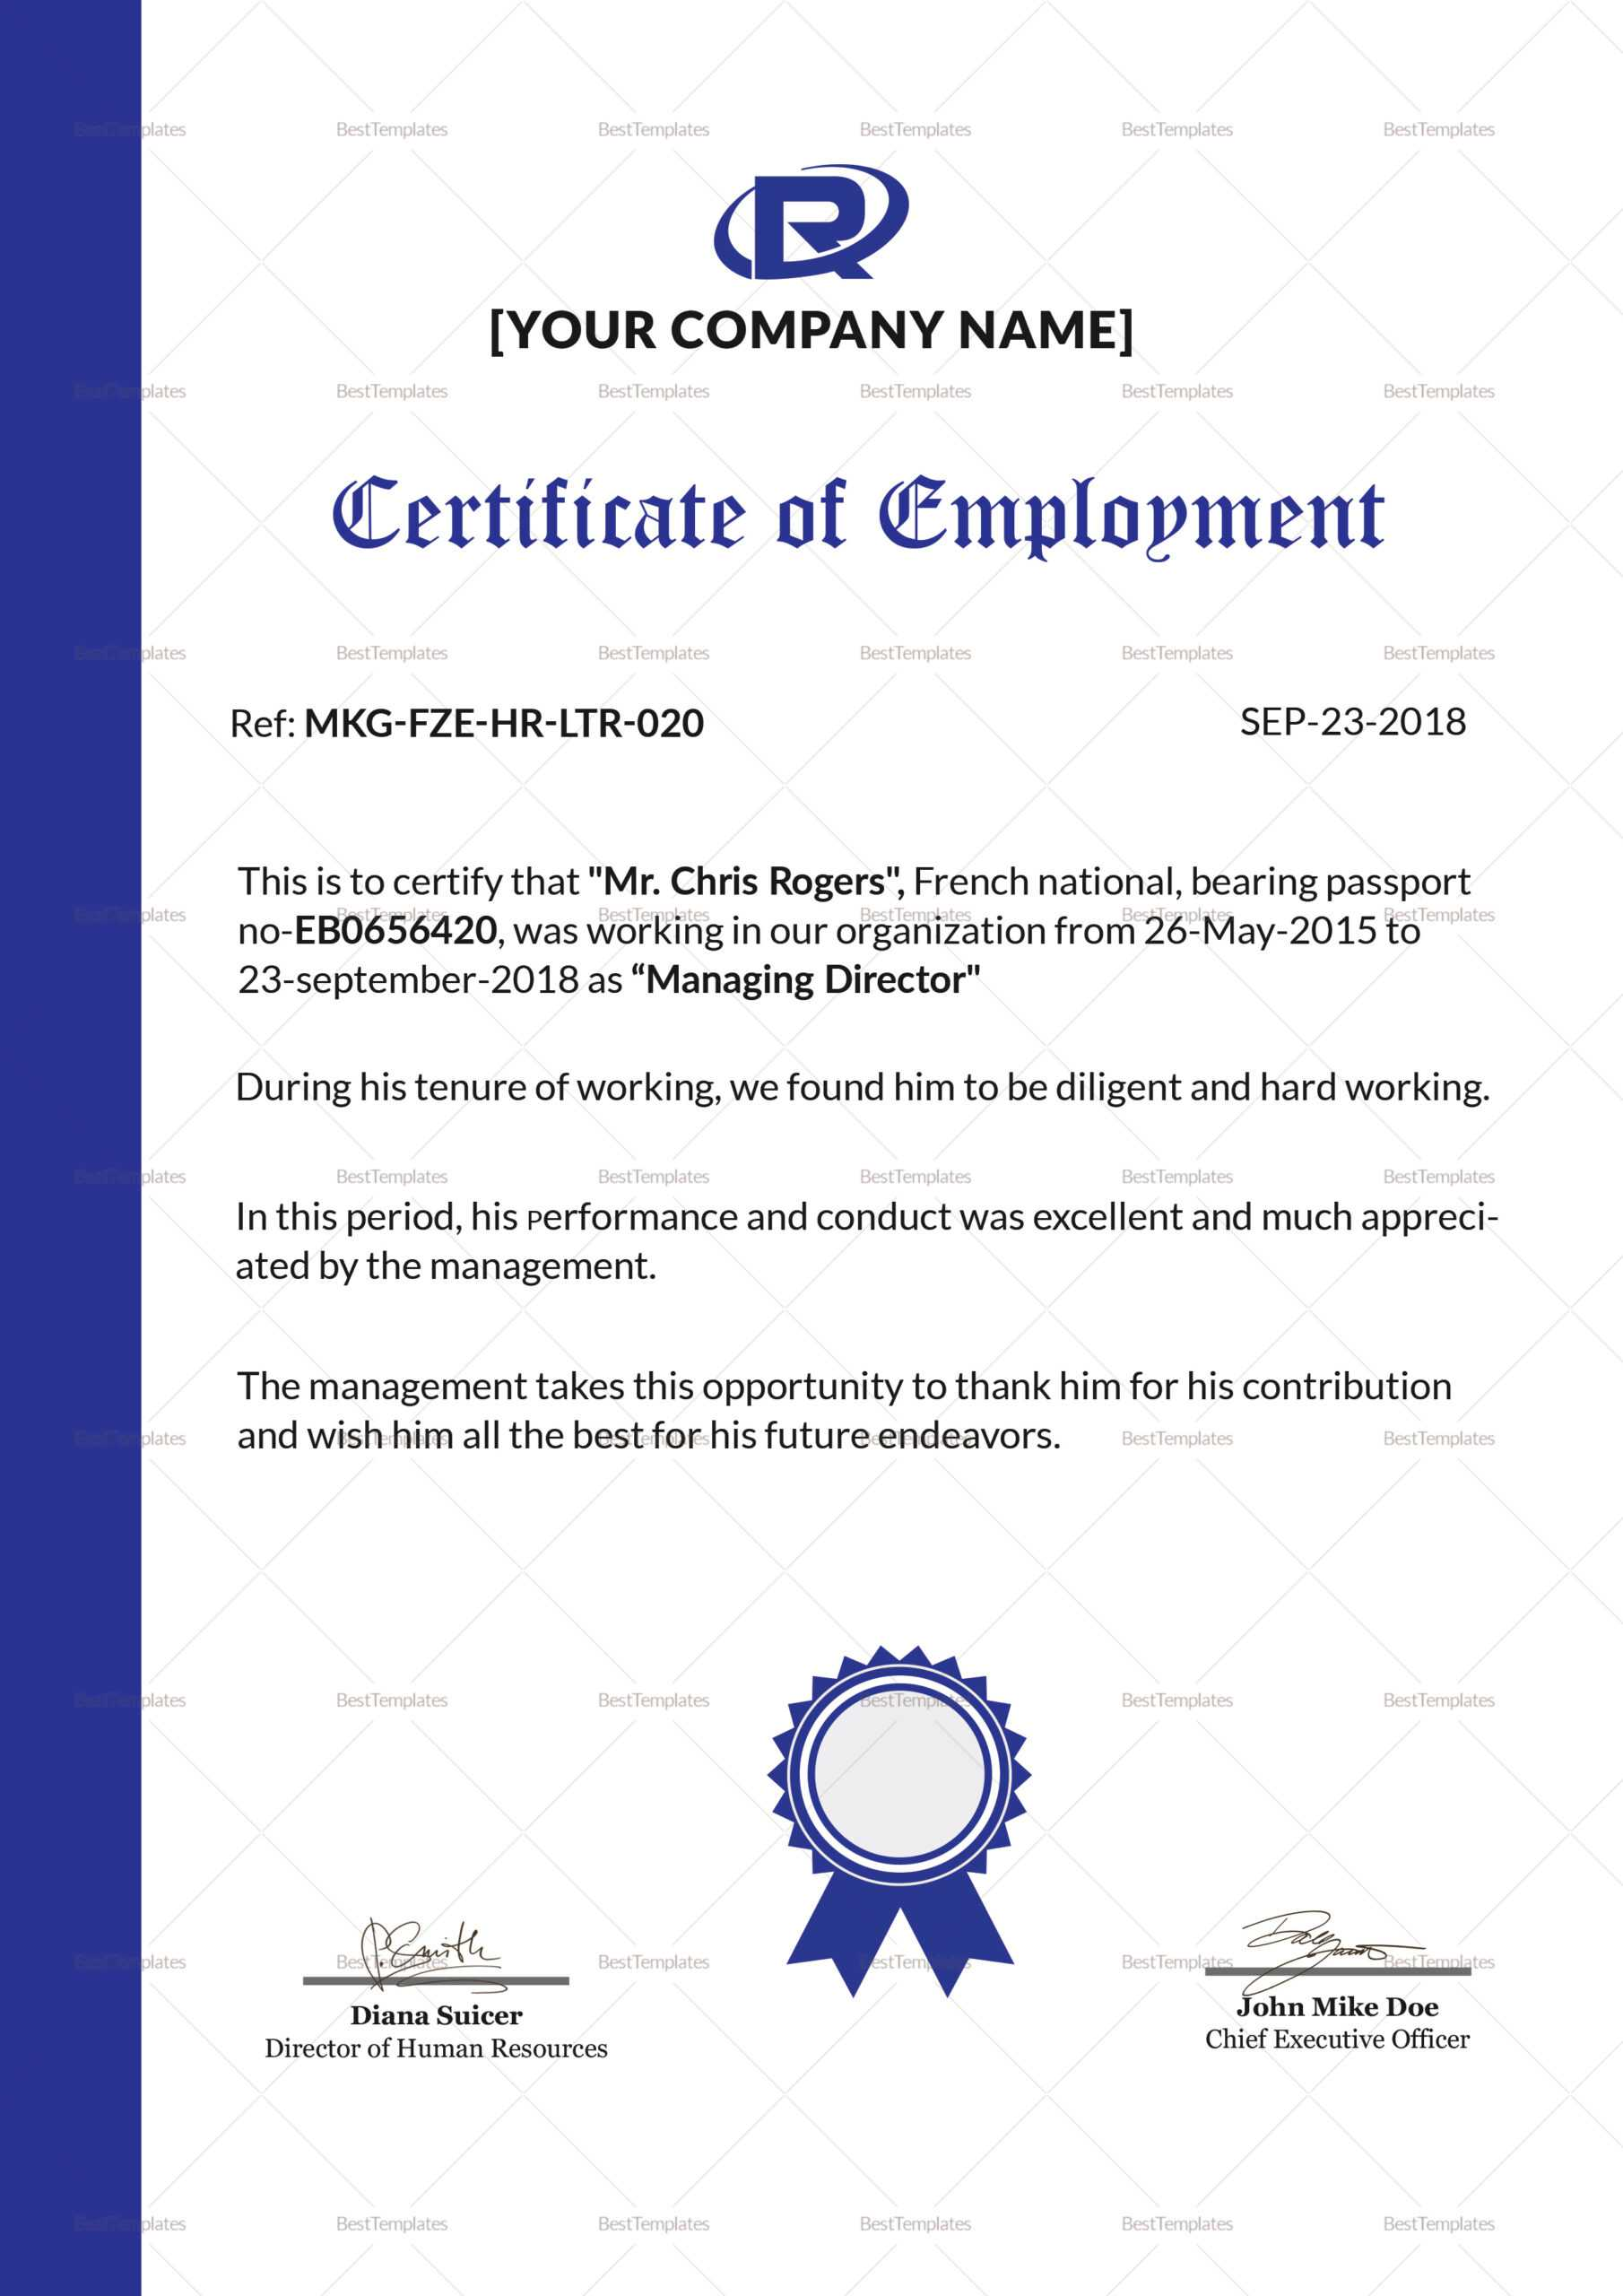 006 Certificate Of Employment Template Sample Impressive With Regard To Certificate Of Employment Template